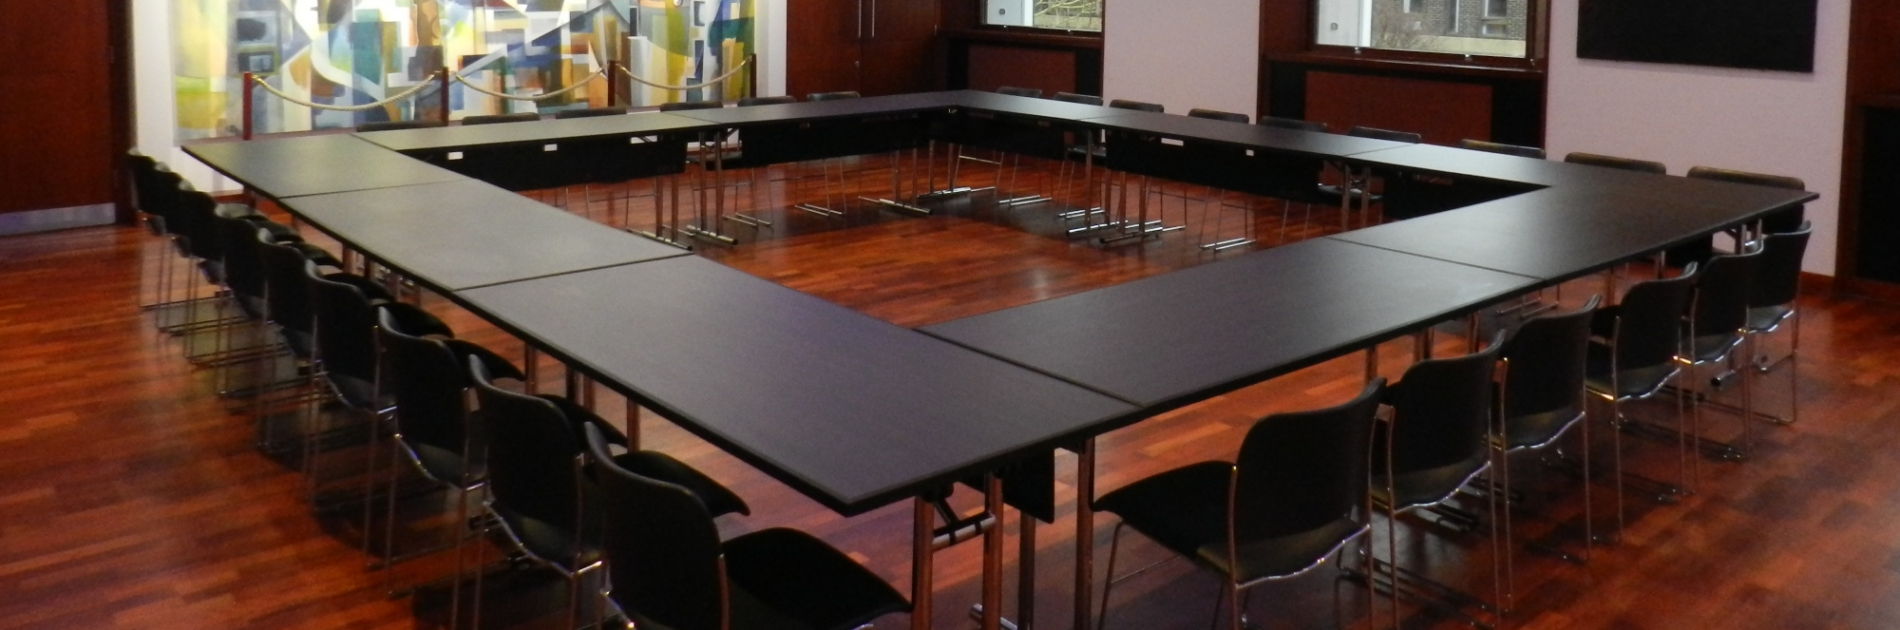 Fitzwilliam Events rooms and layouts